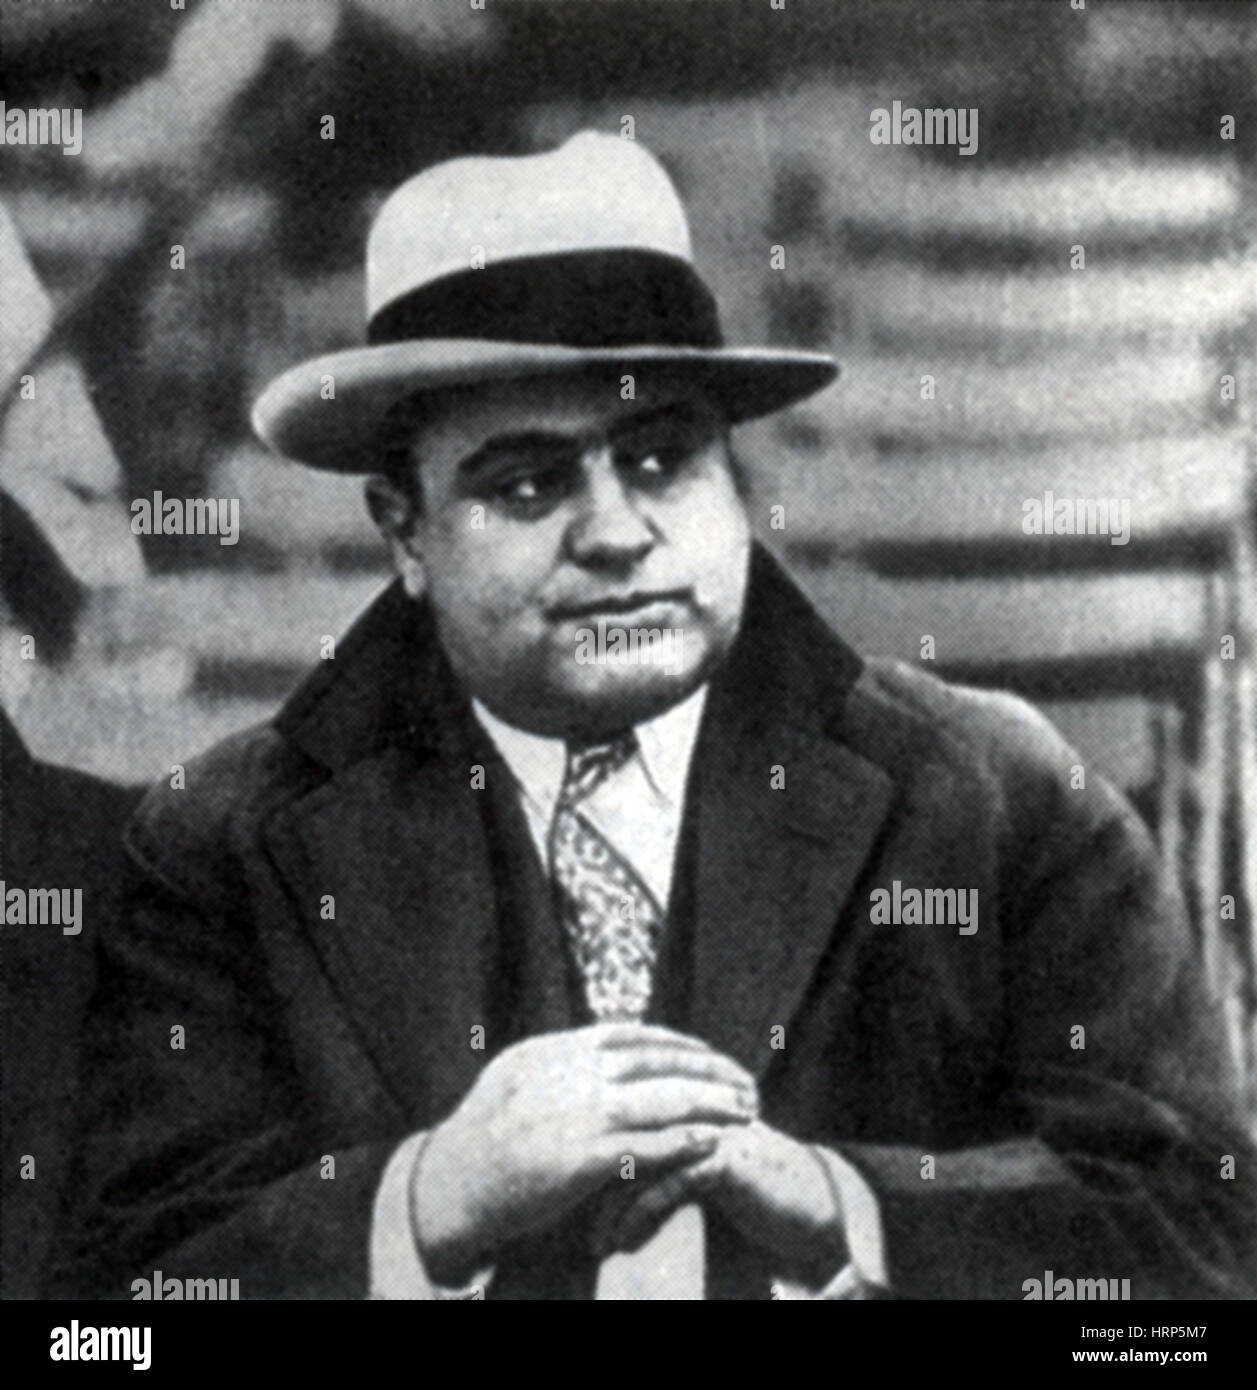 Al Capone, American Mobster - Stock Image